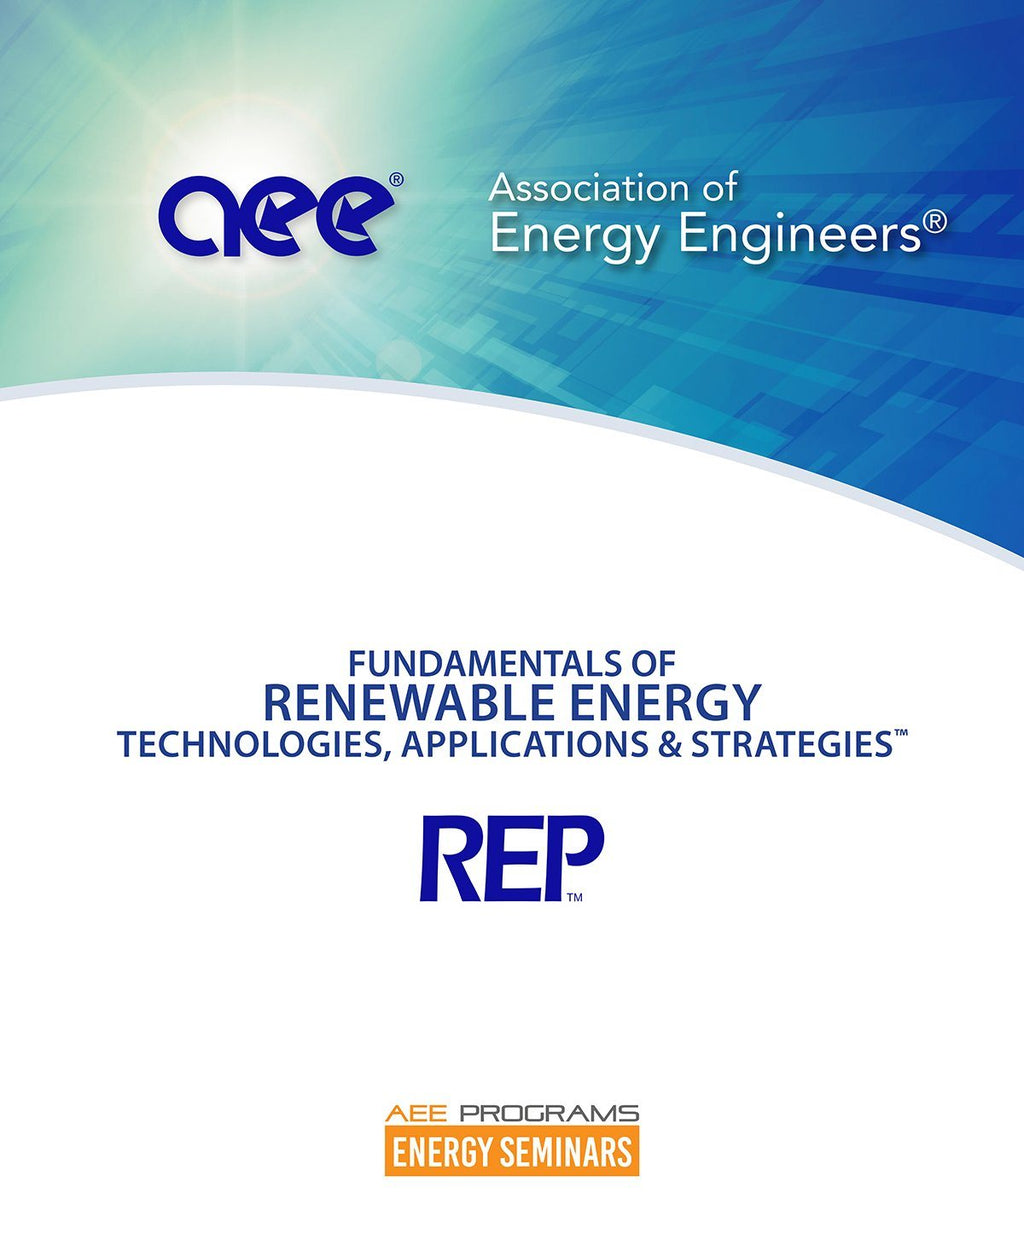 Fundamentals Of Renewable Energy: Technologies, Applications, Strategies™ - AEE Programs